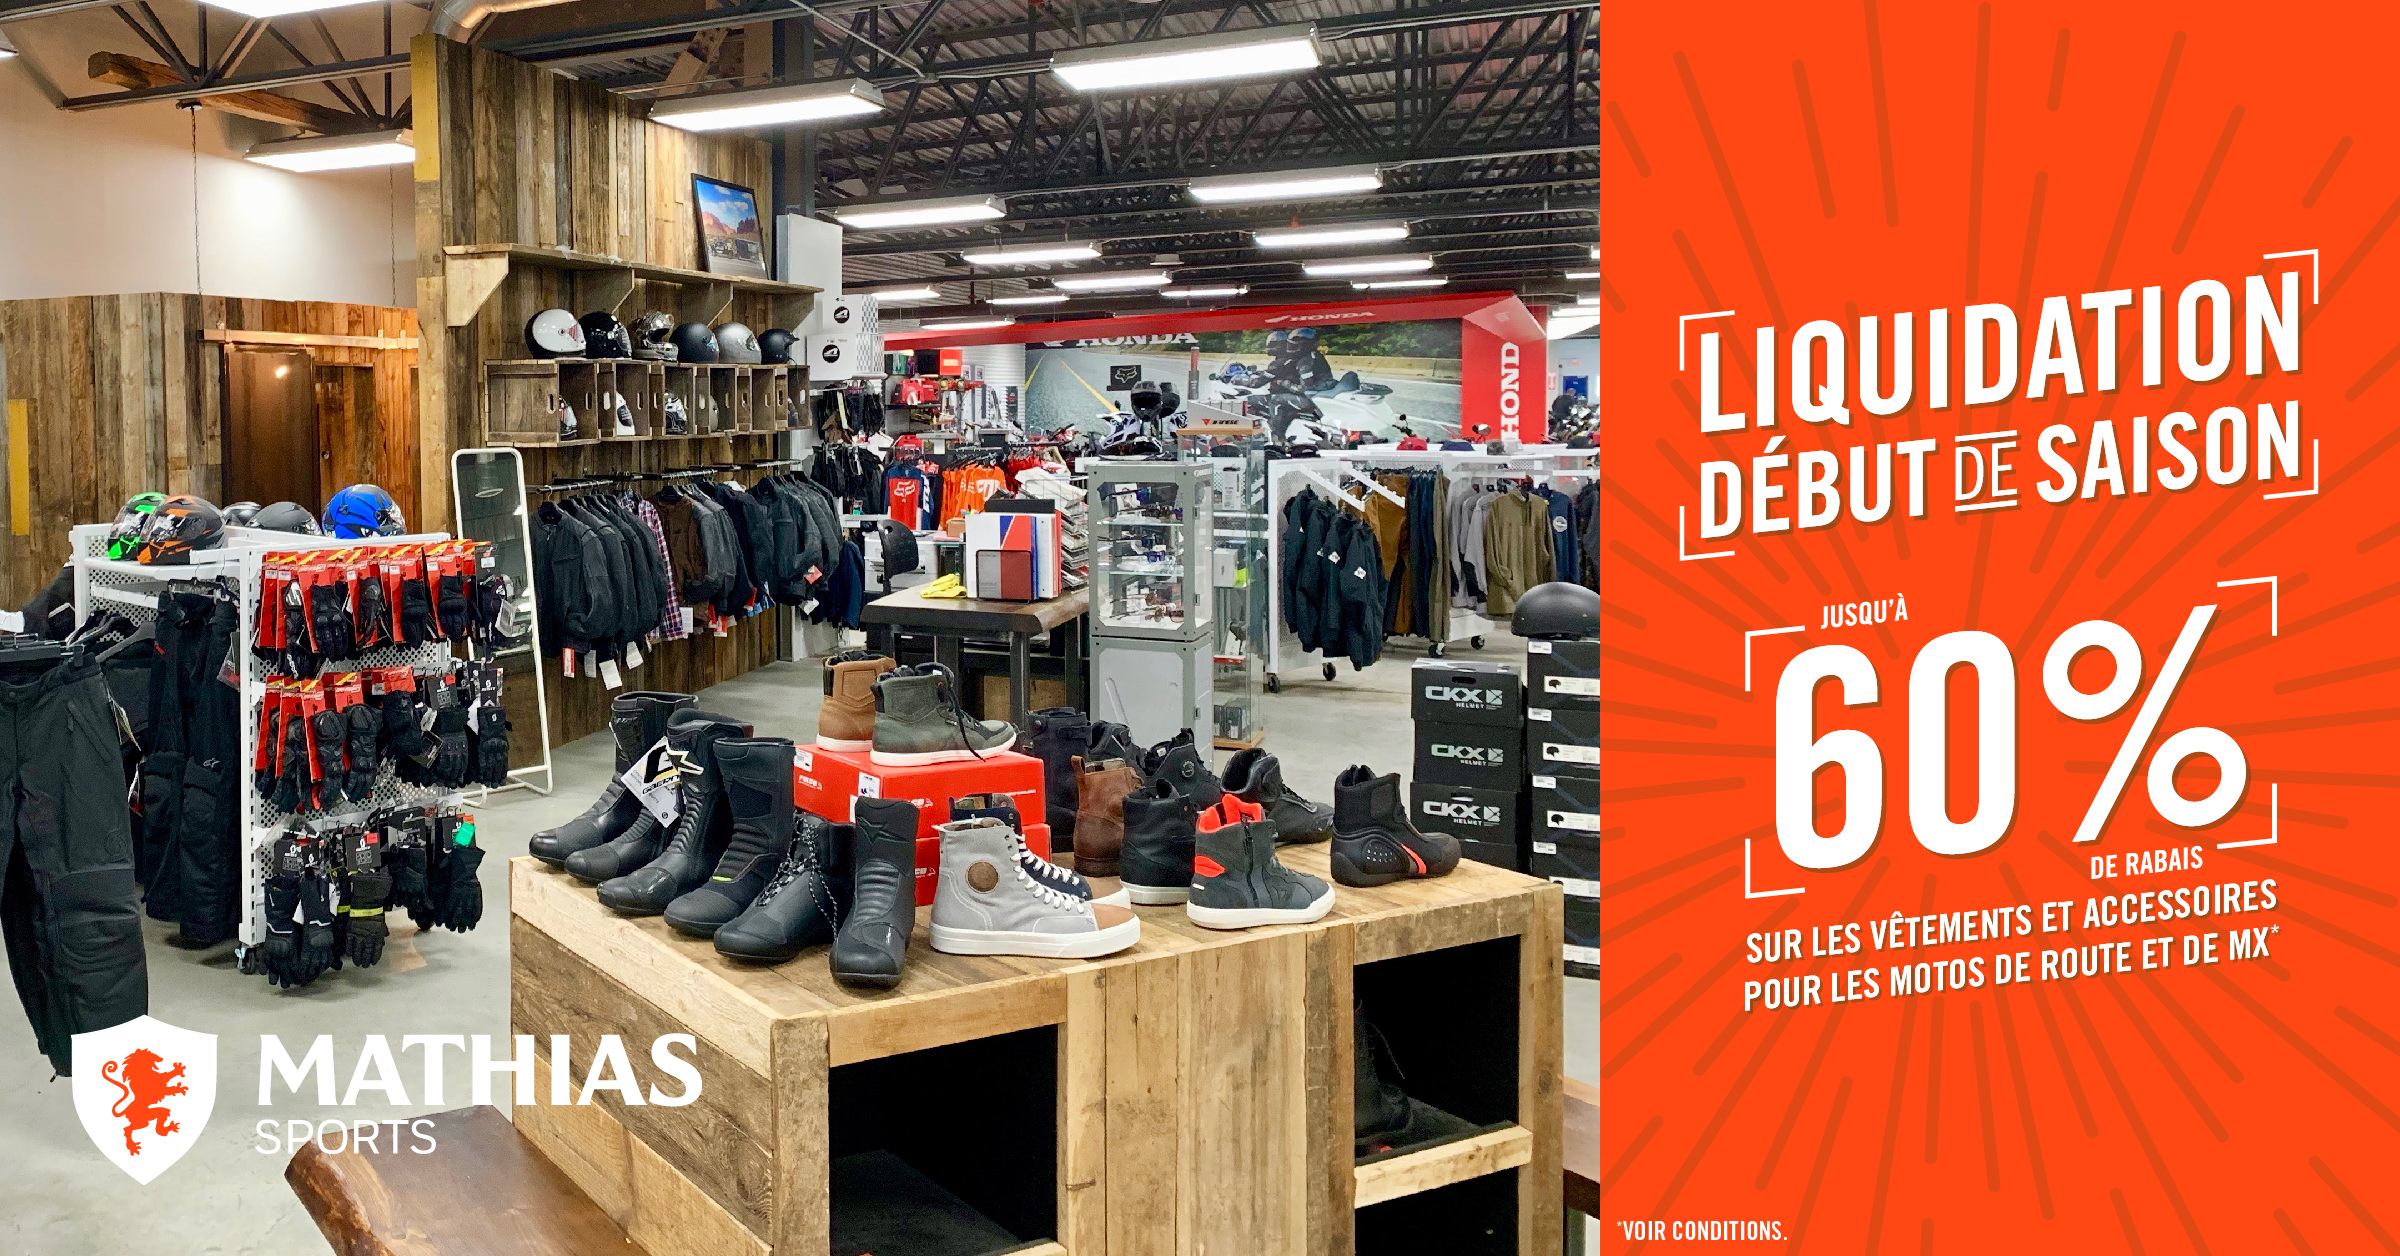 Grande Liquidation à la Boutique Mathias Sports !